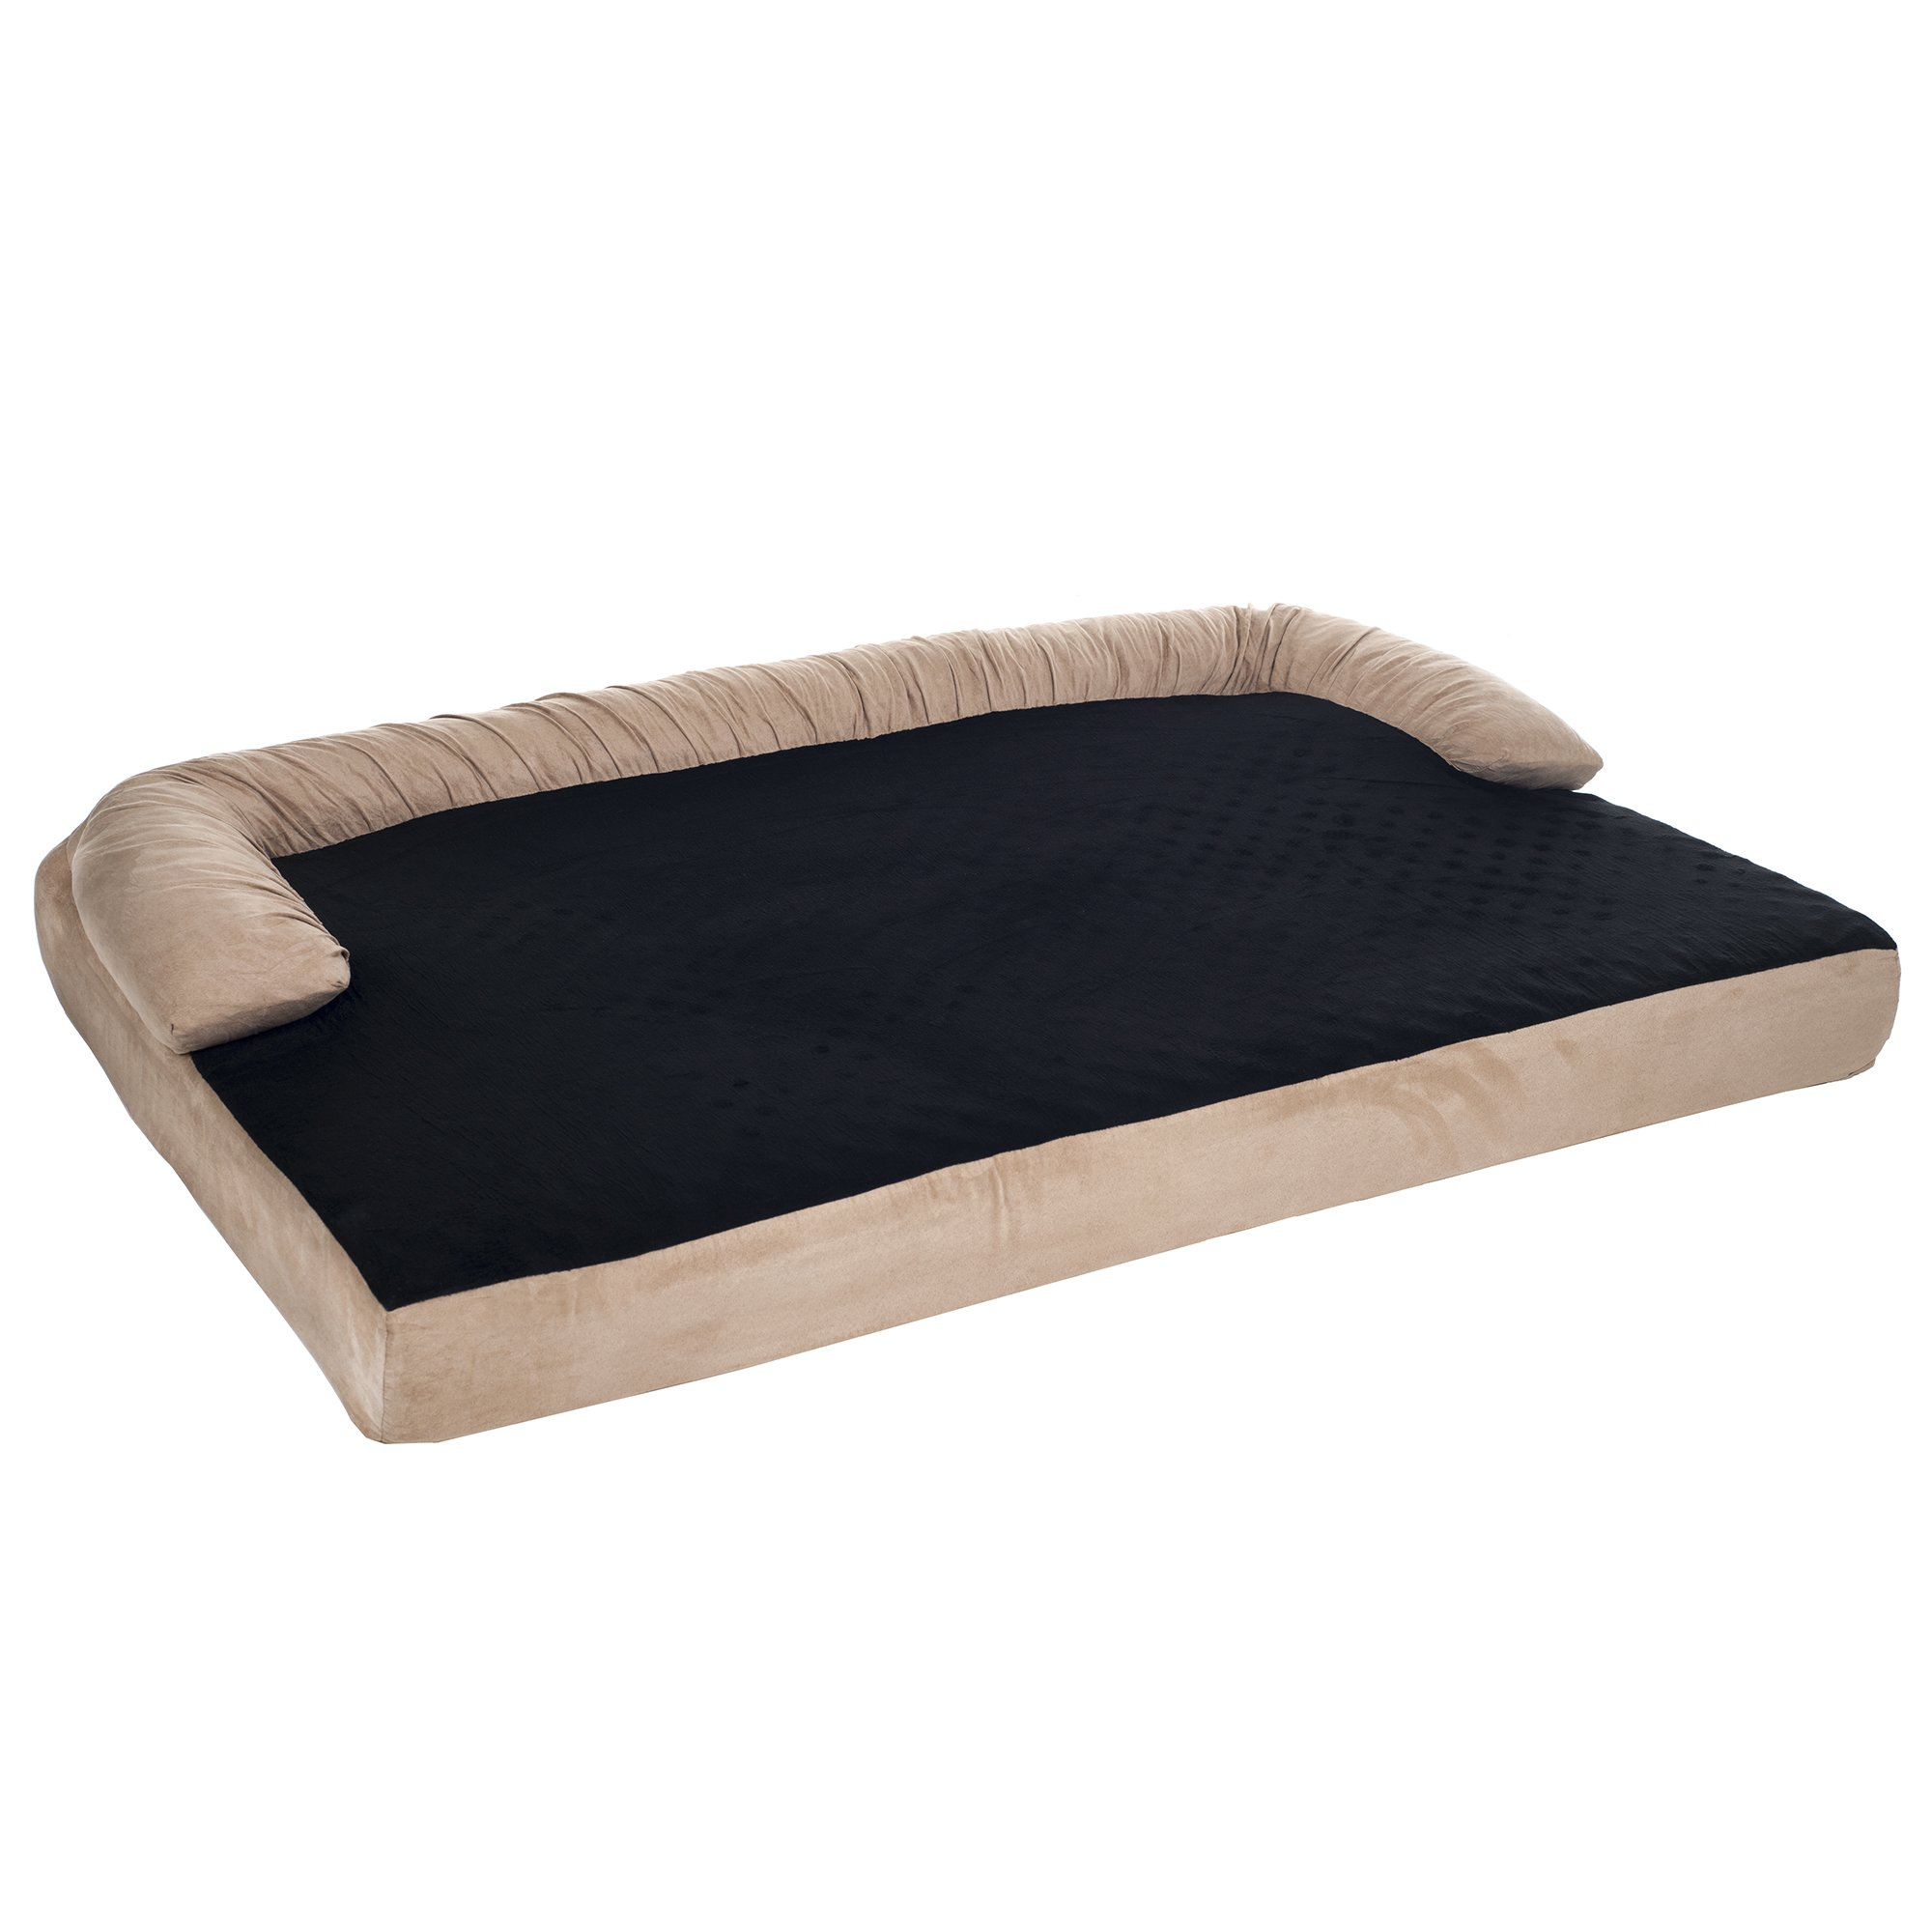 foam products main bed db dog murdochs beds pets